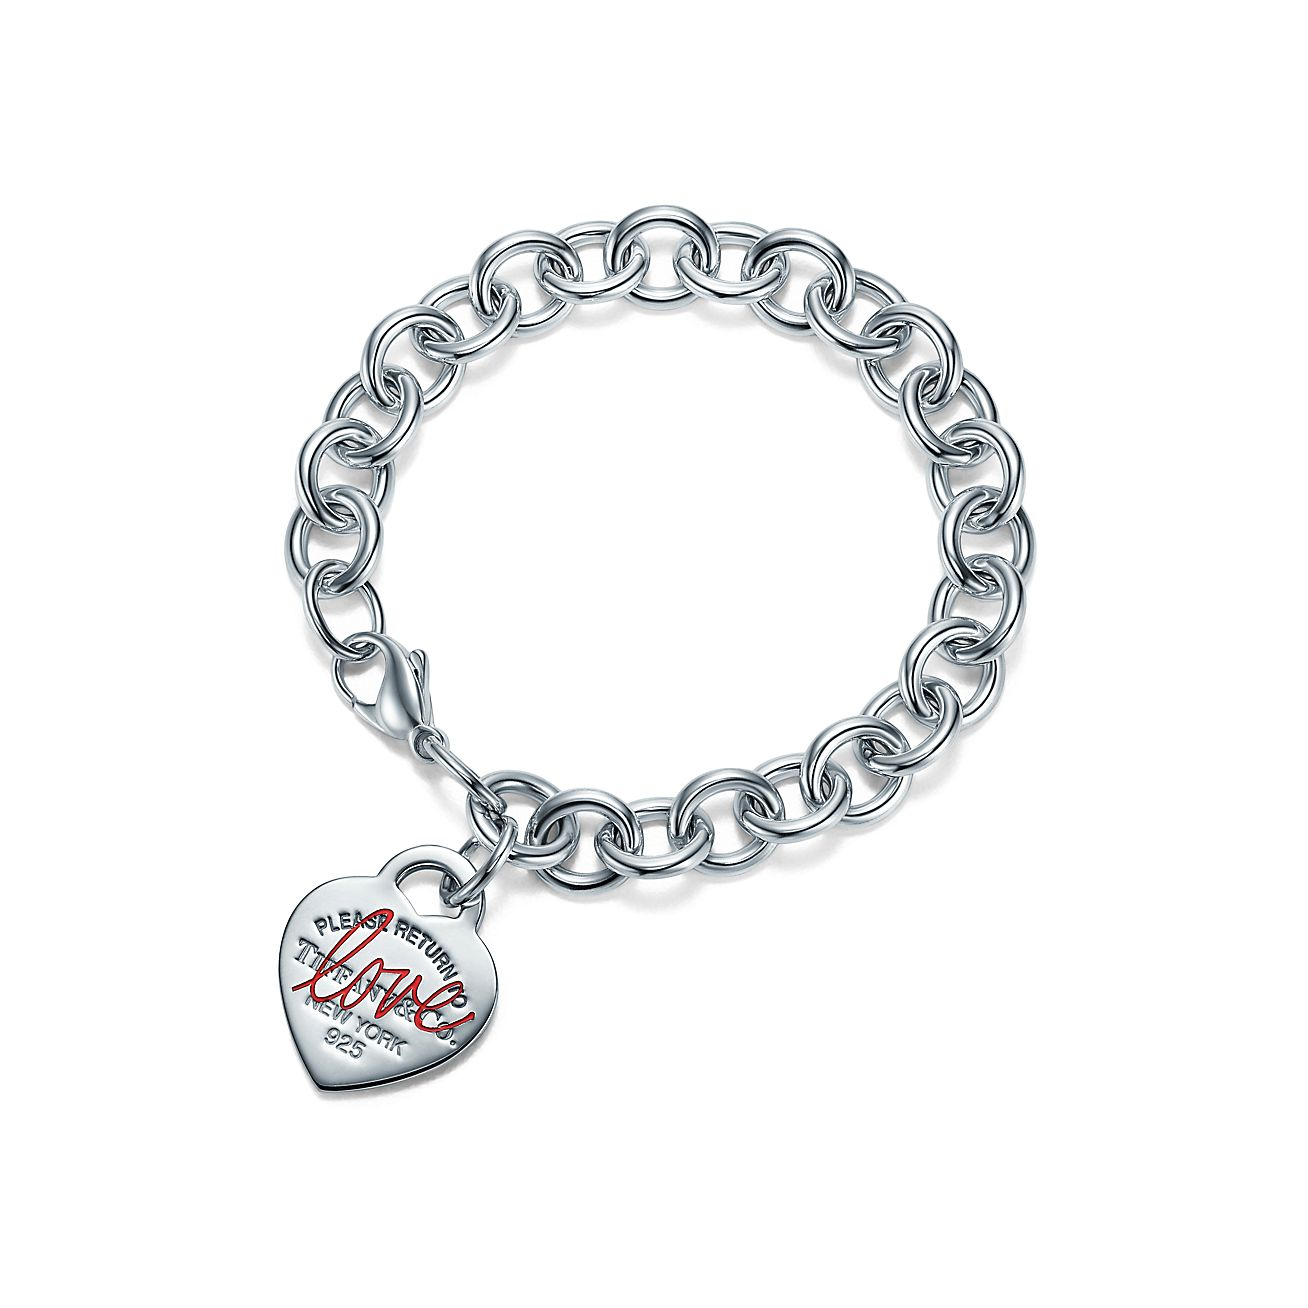 Tiffany Love Heart Tag Bracelet